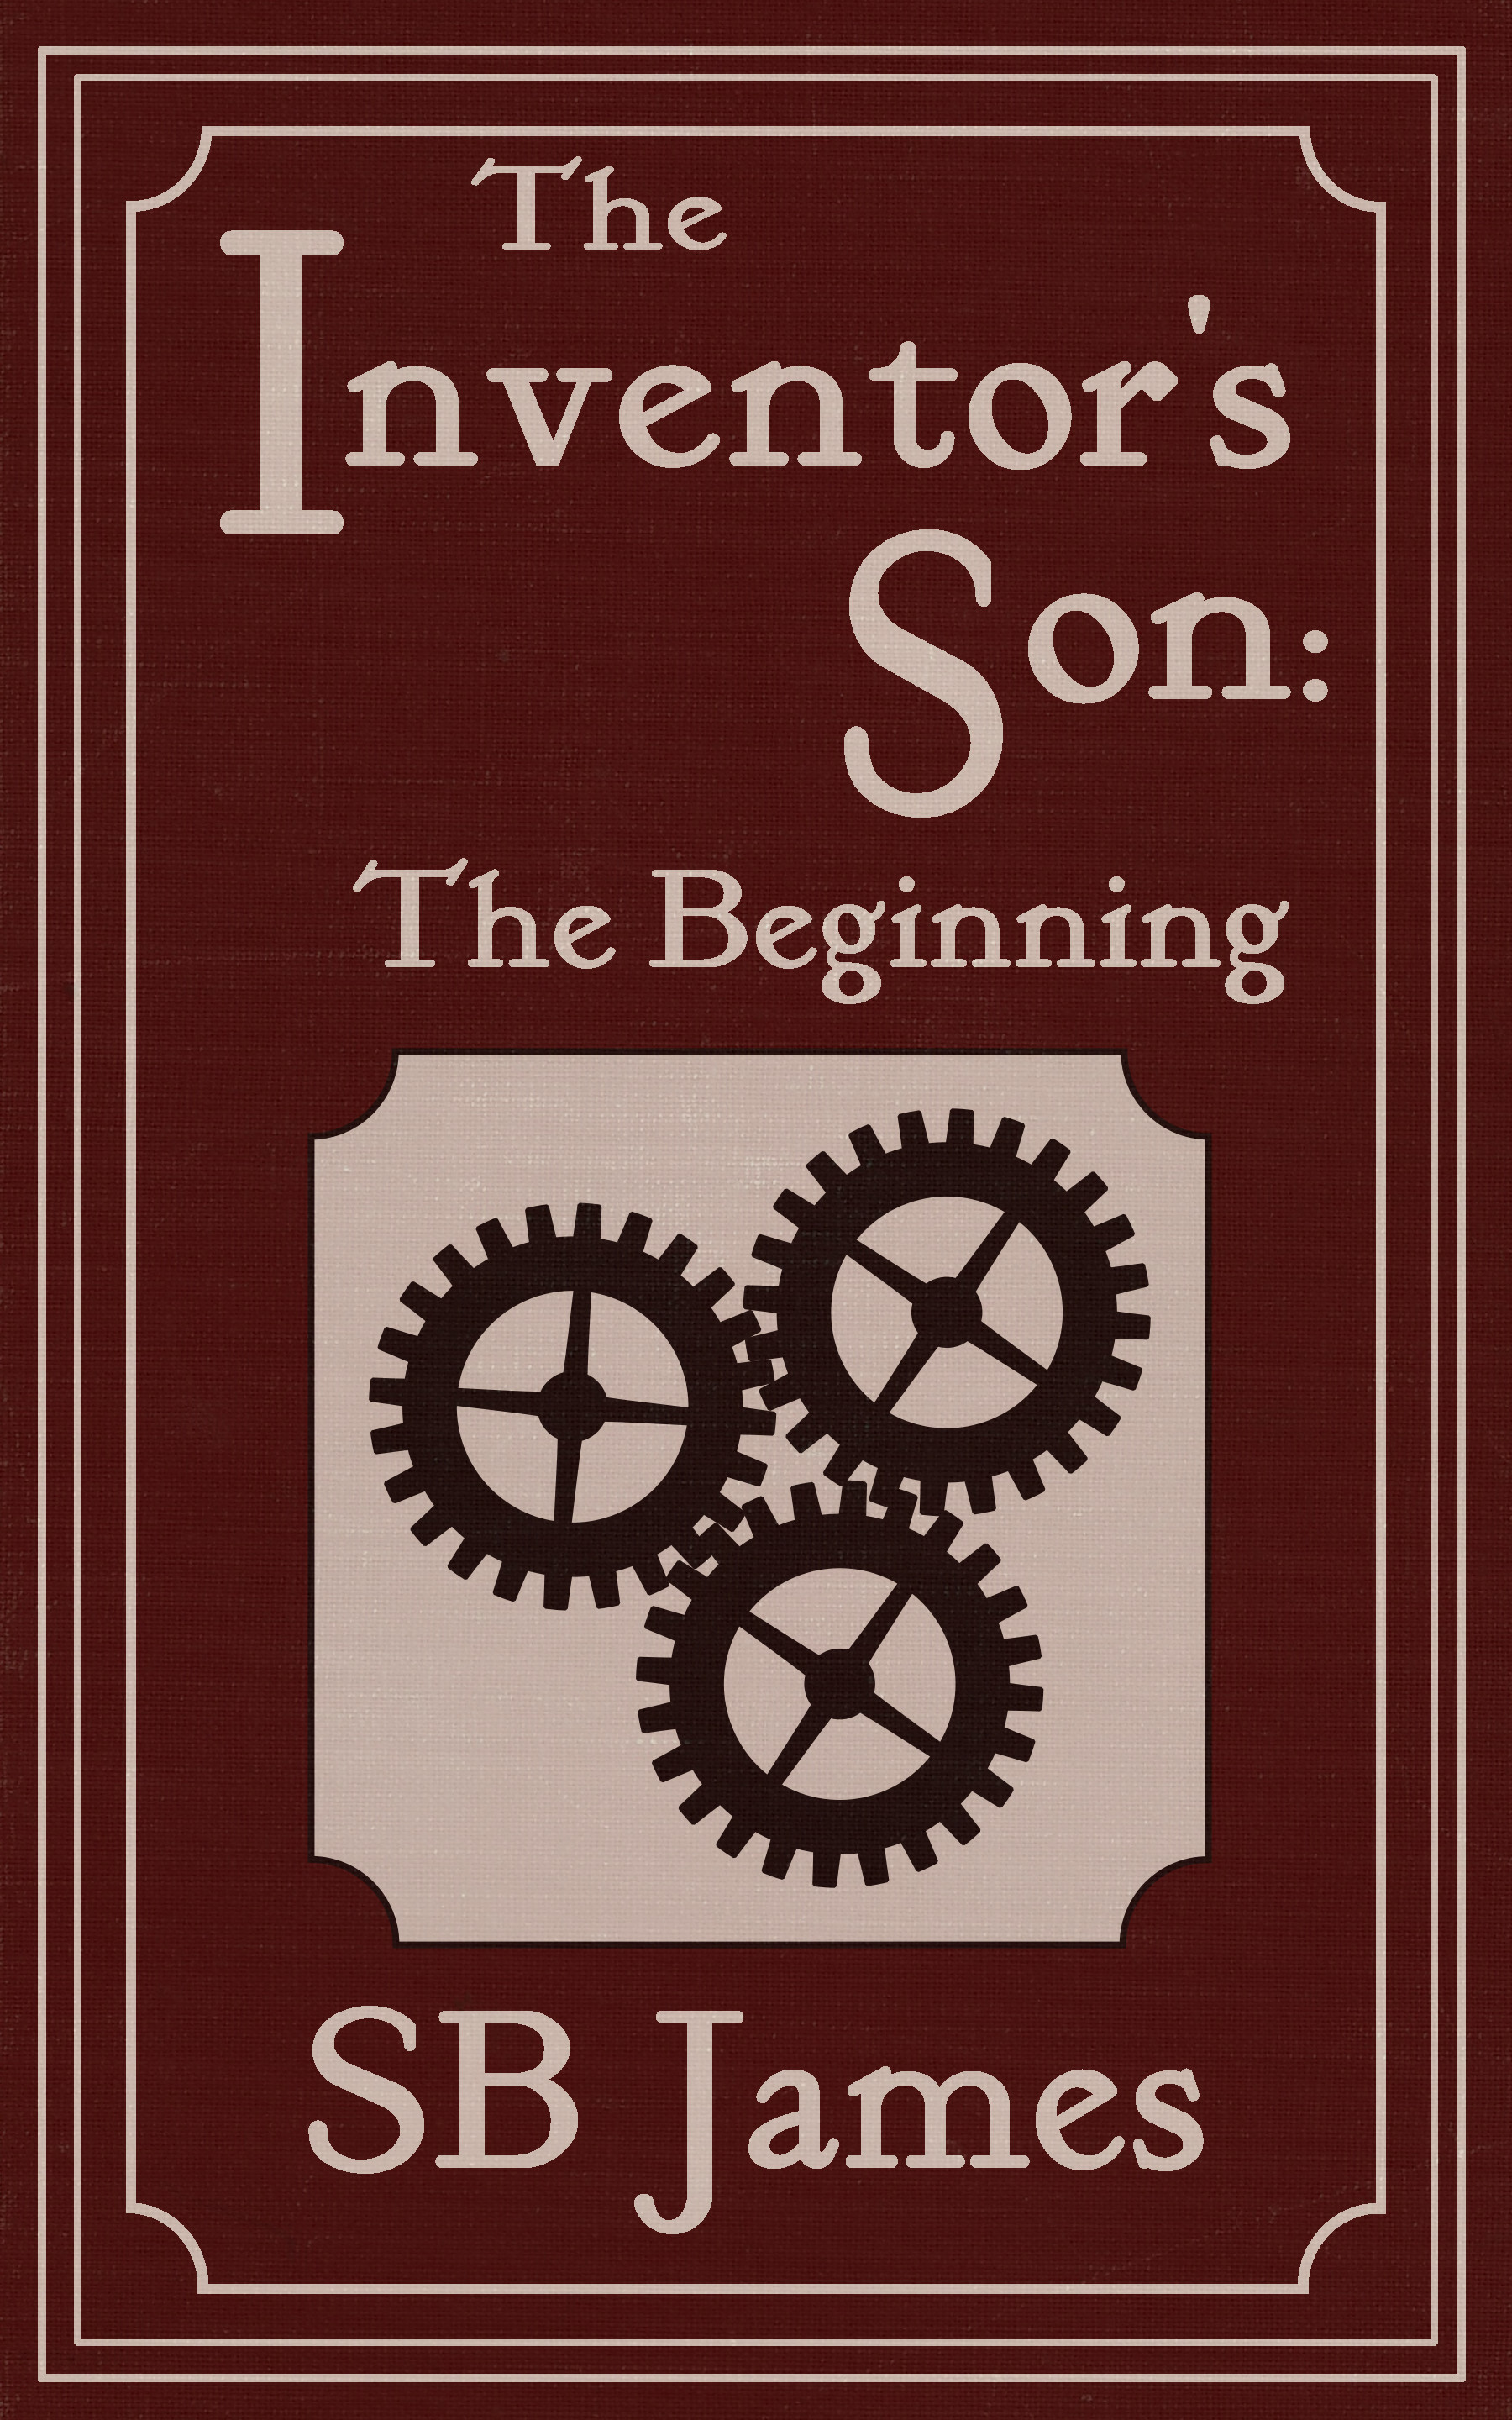 The Slightly Revised Beginning Cover